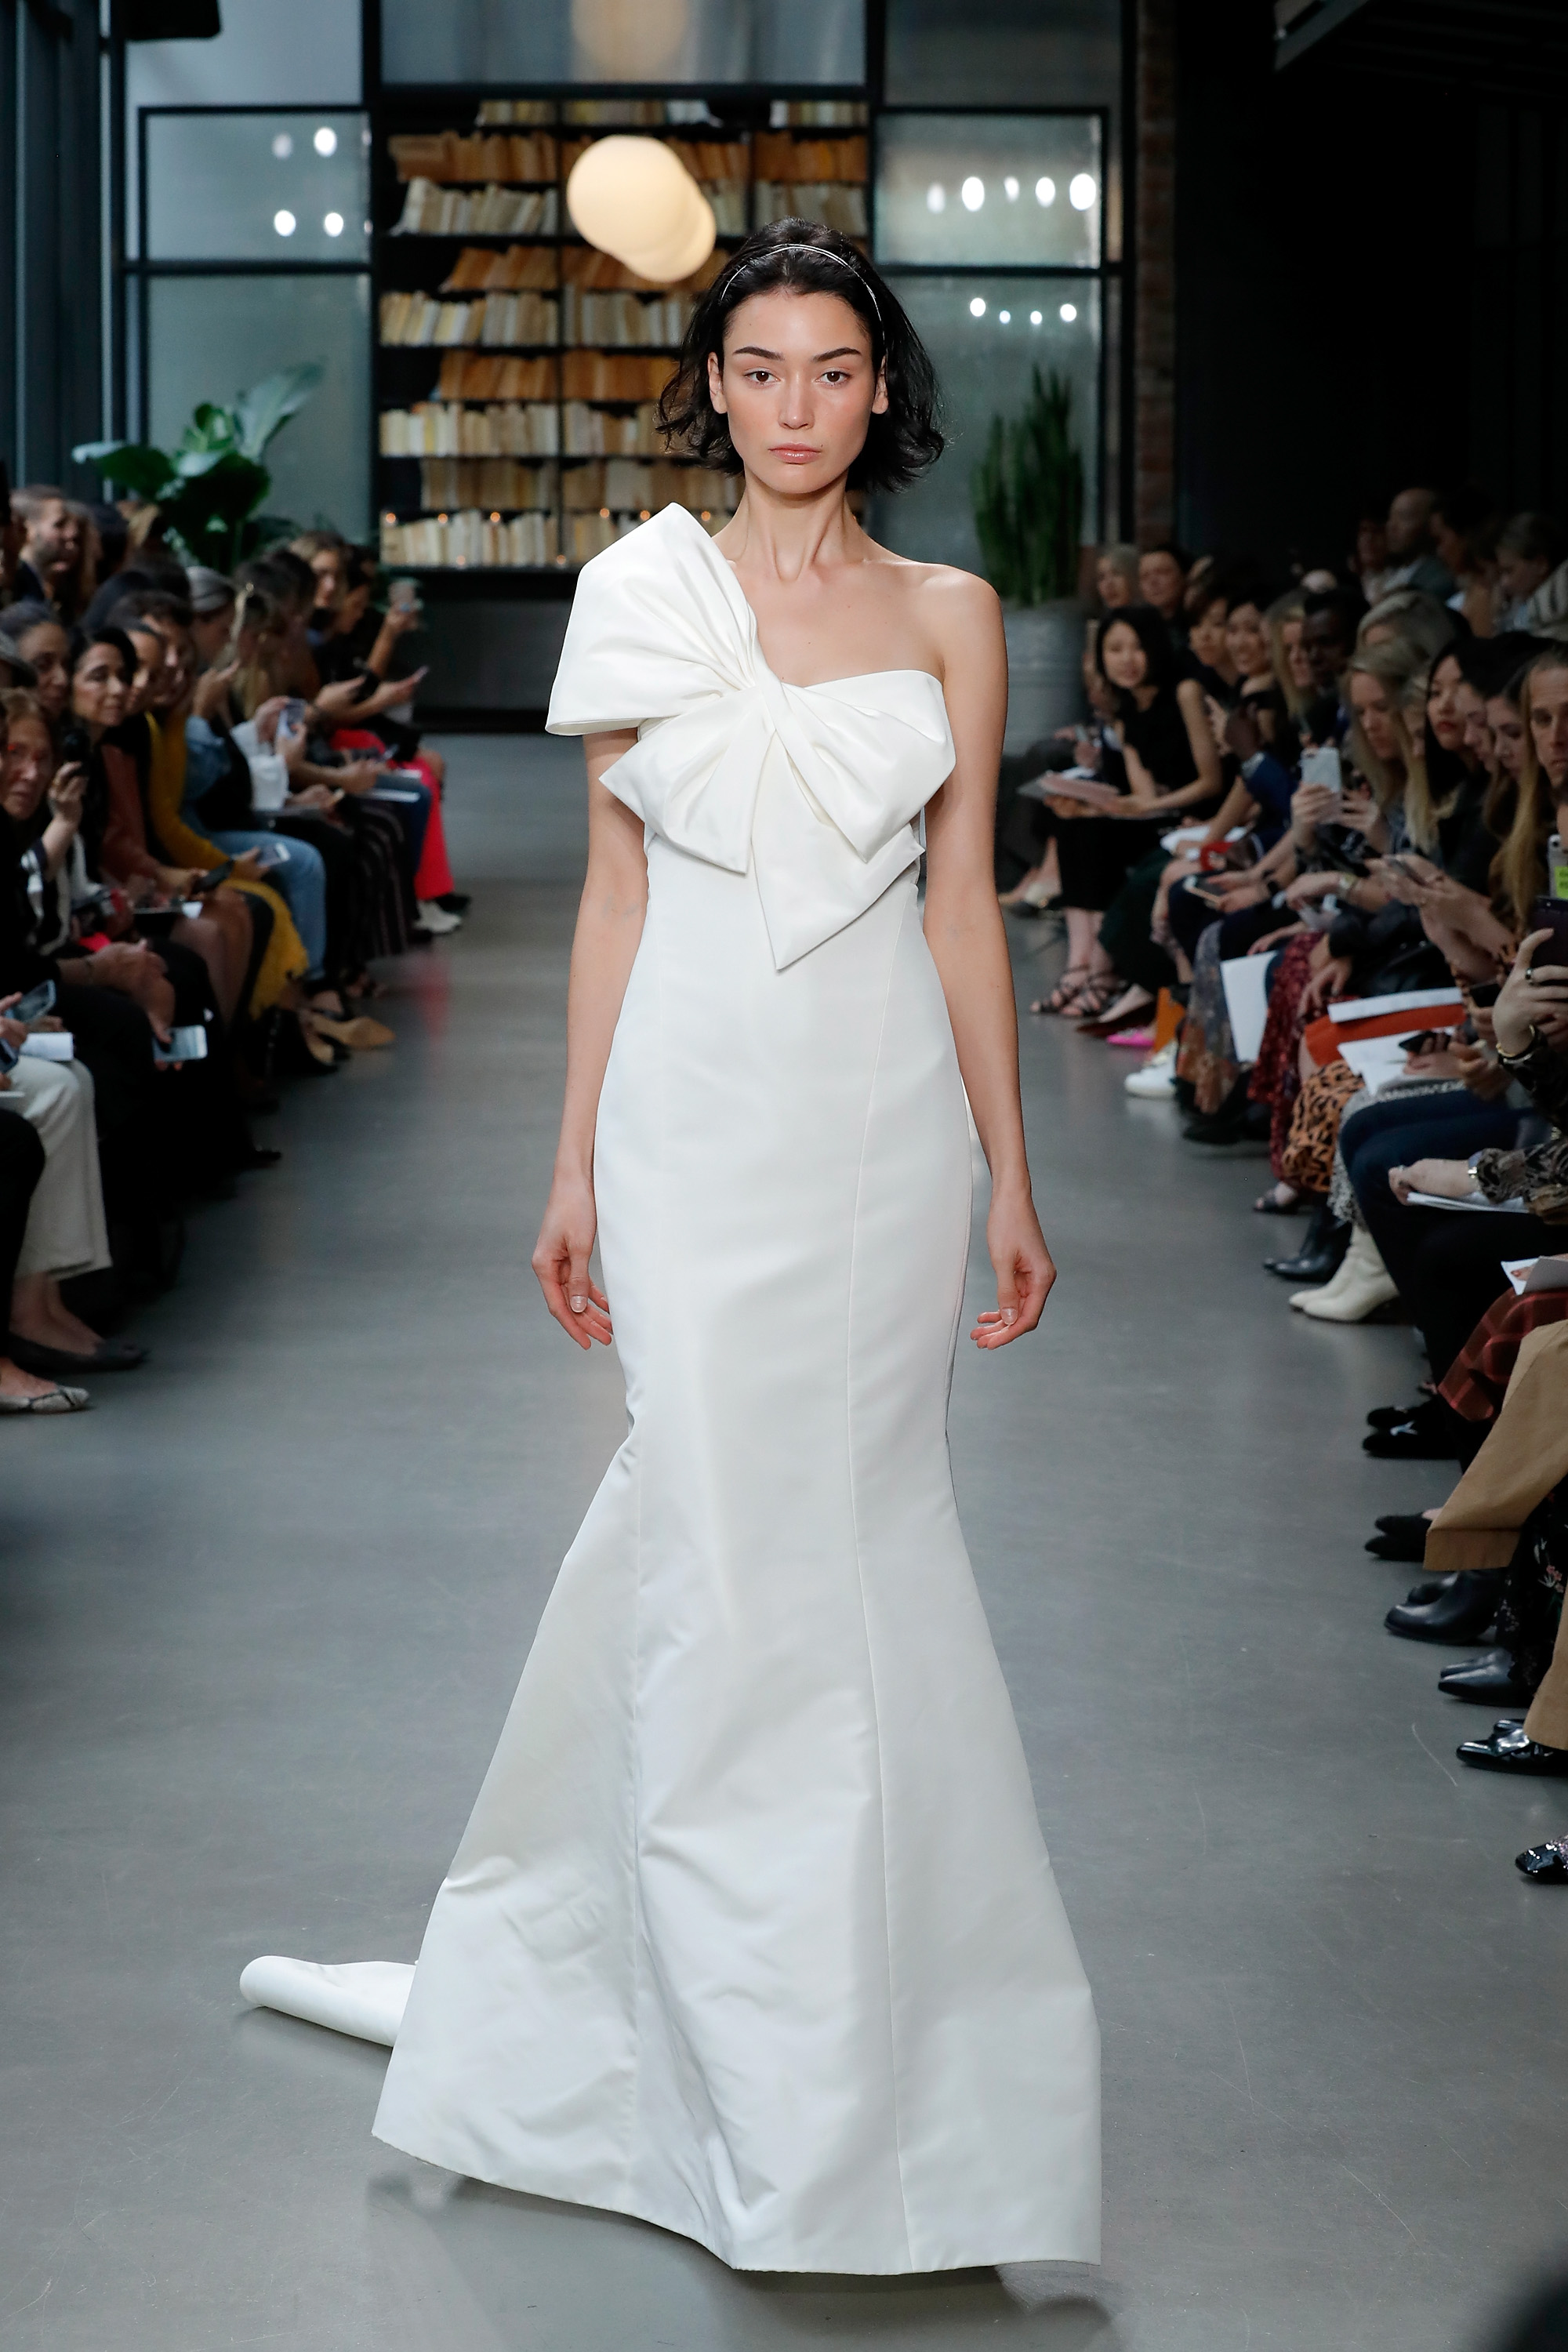 Amsale wedding dress with large bow at neckline